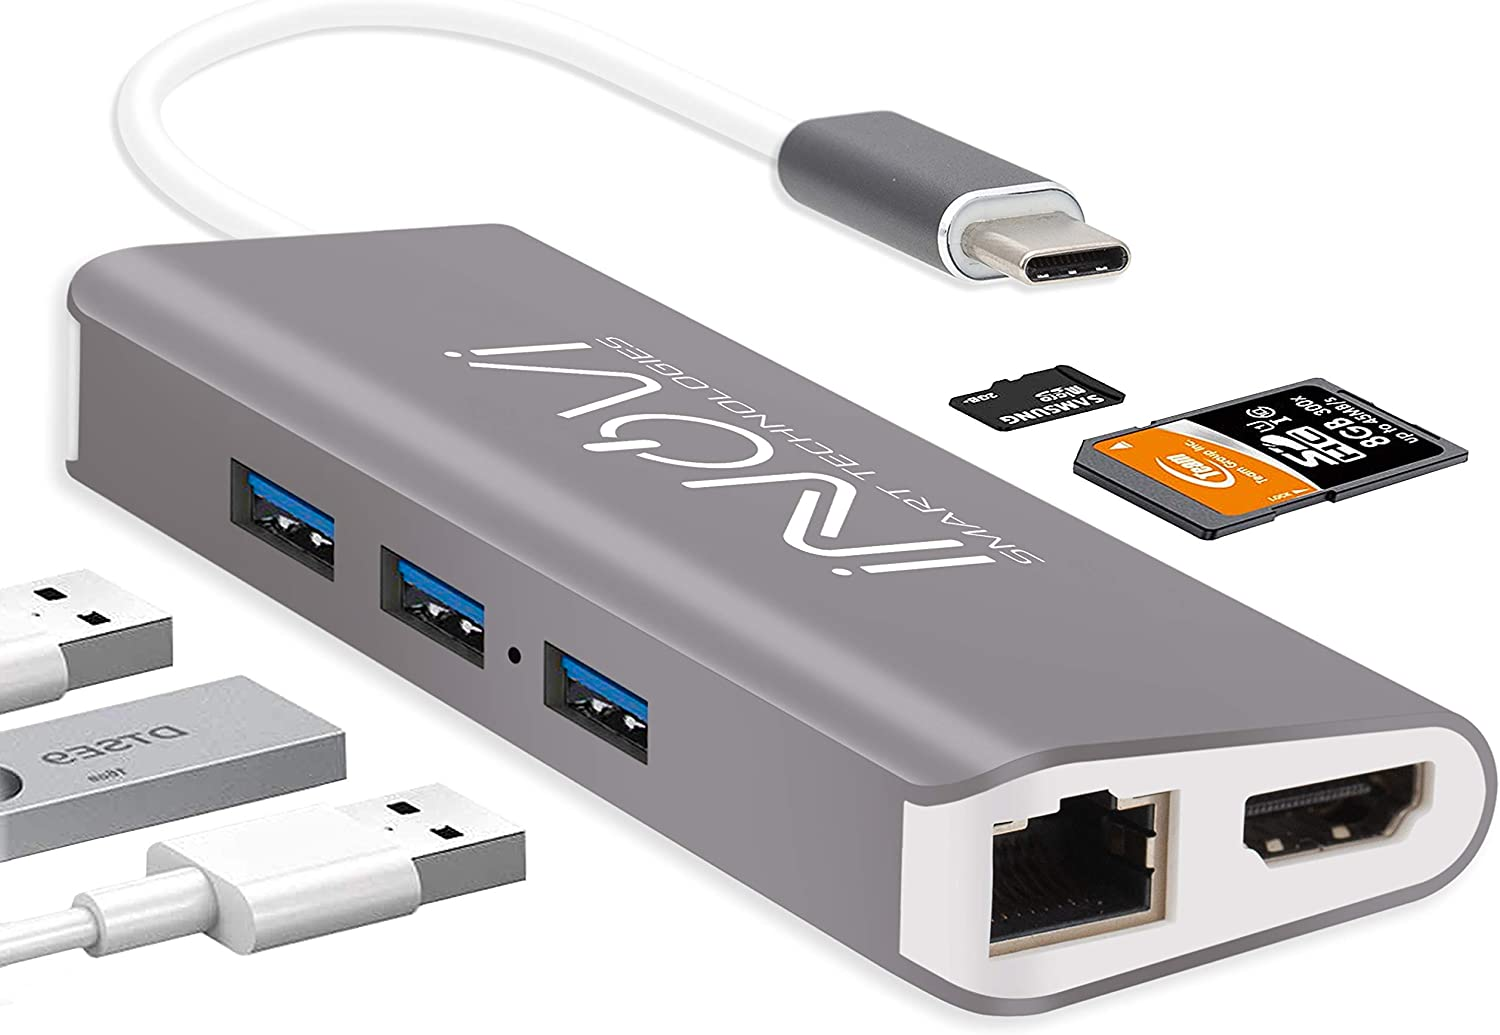 INOVI USB C Hub 8-in-1 Type C Adapter with Ethernet, 4K HDMI,3 USB 3.0,USB-C Data Port and SD/TF Card Reader Docking Station Compatible with MacBook and All USB-C Laptops